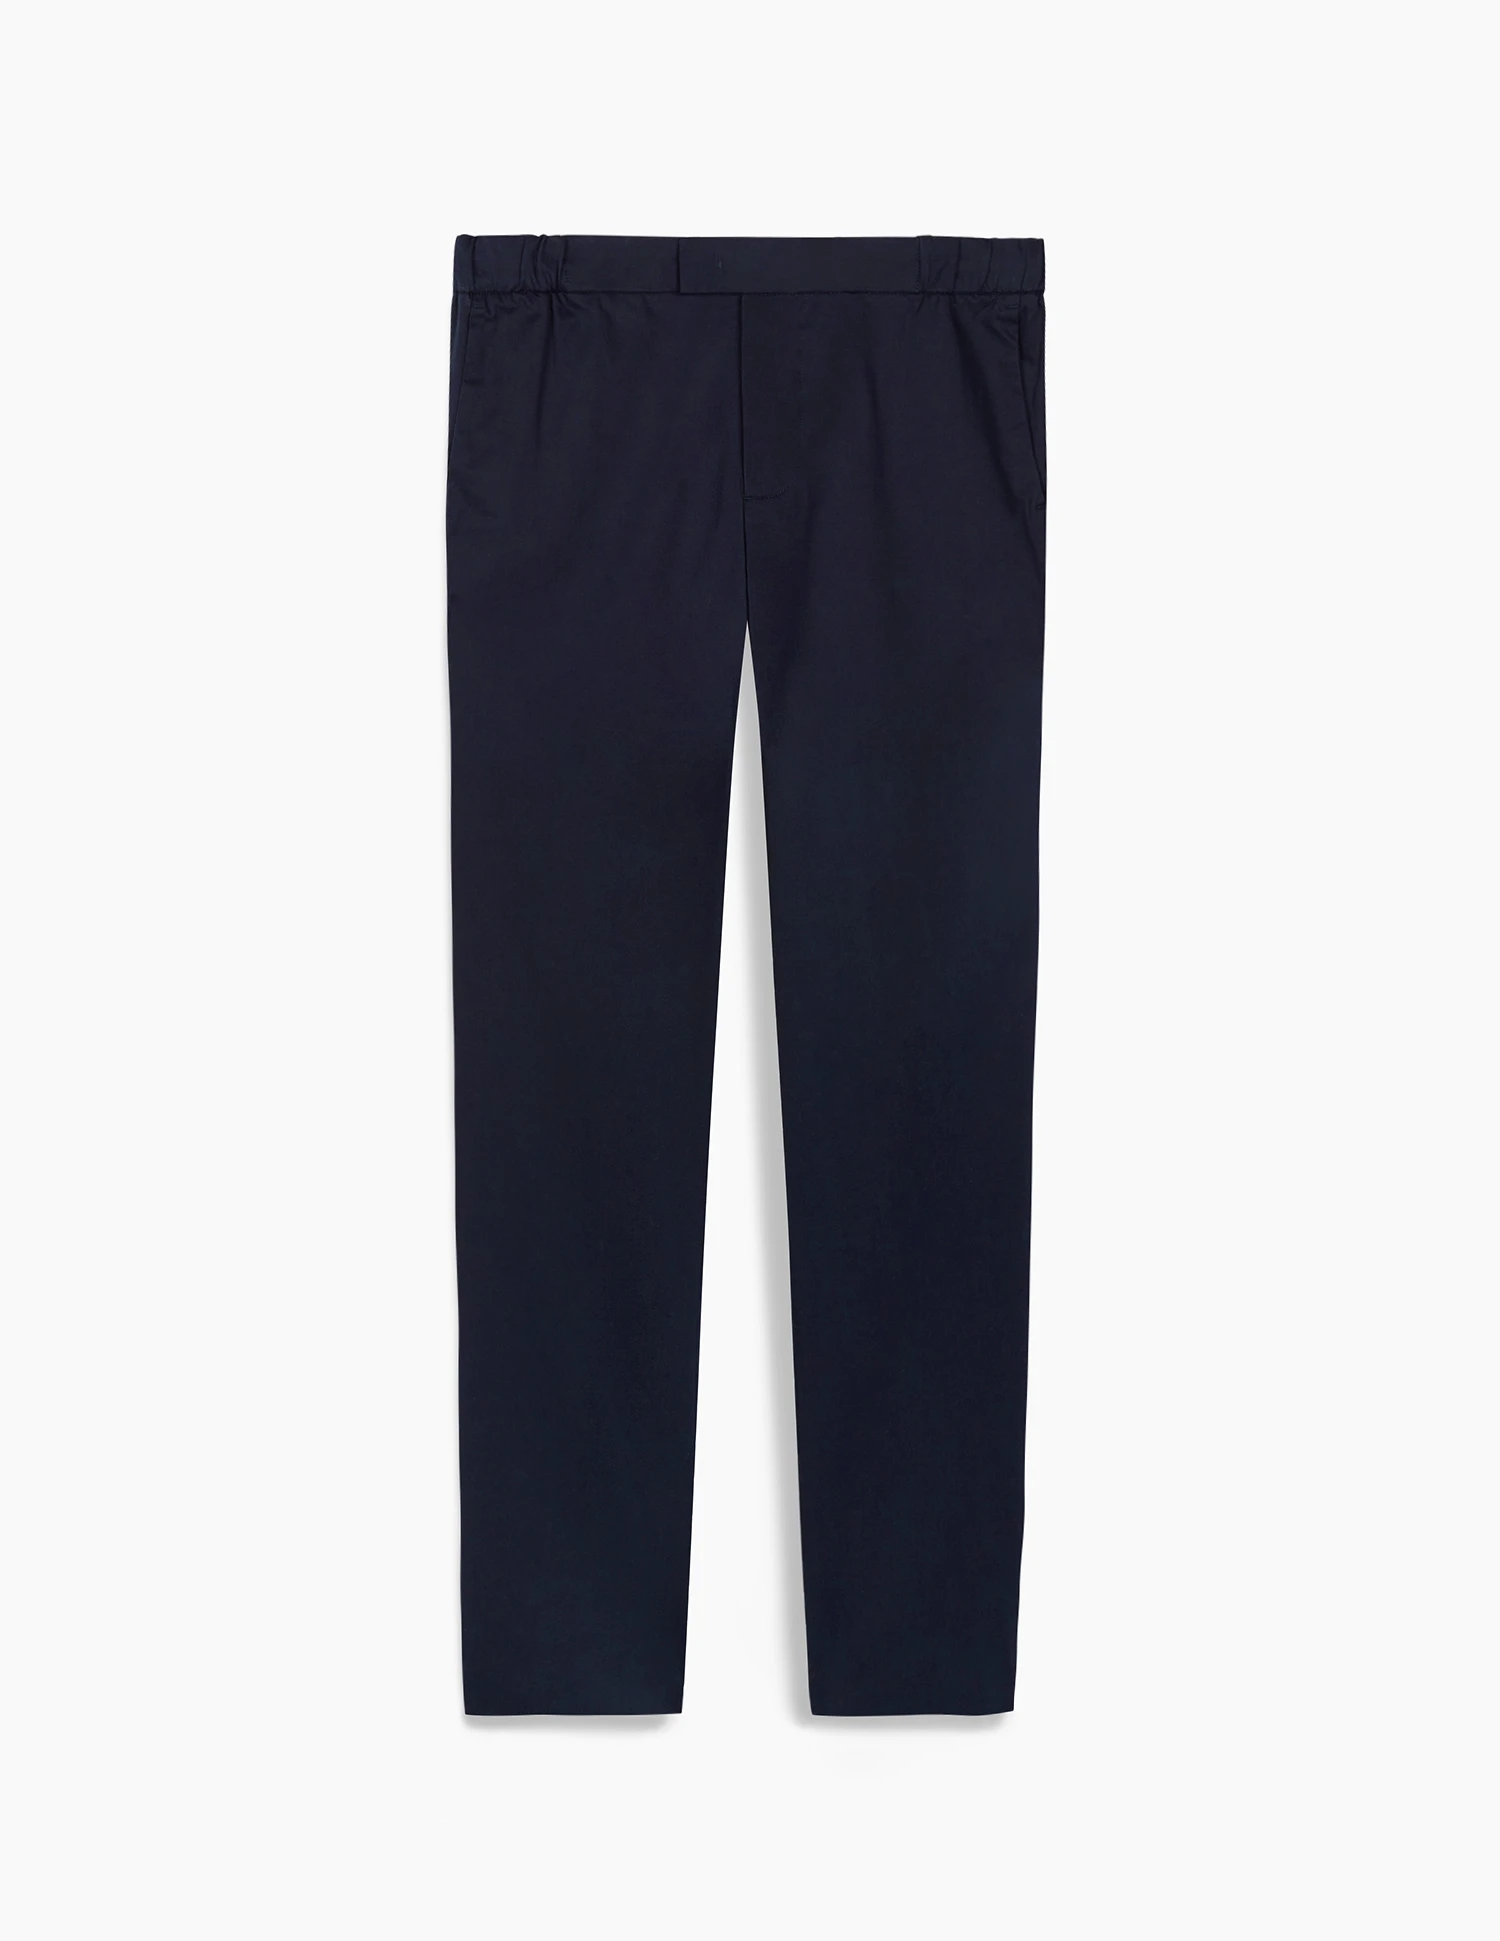 The 25Trouser